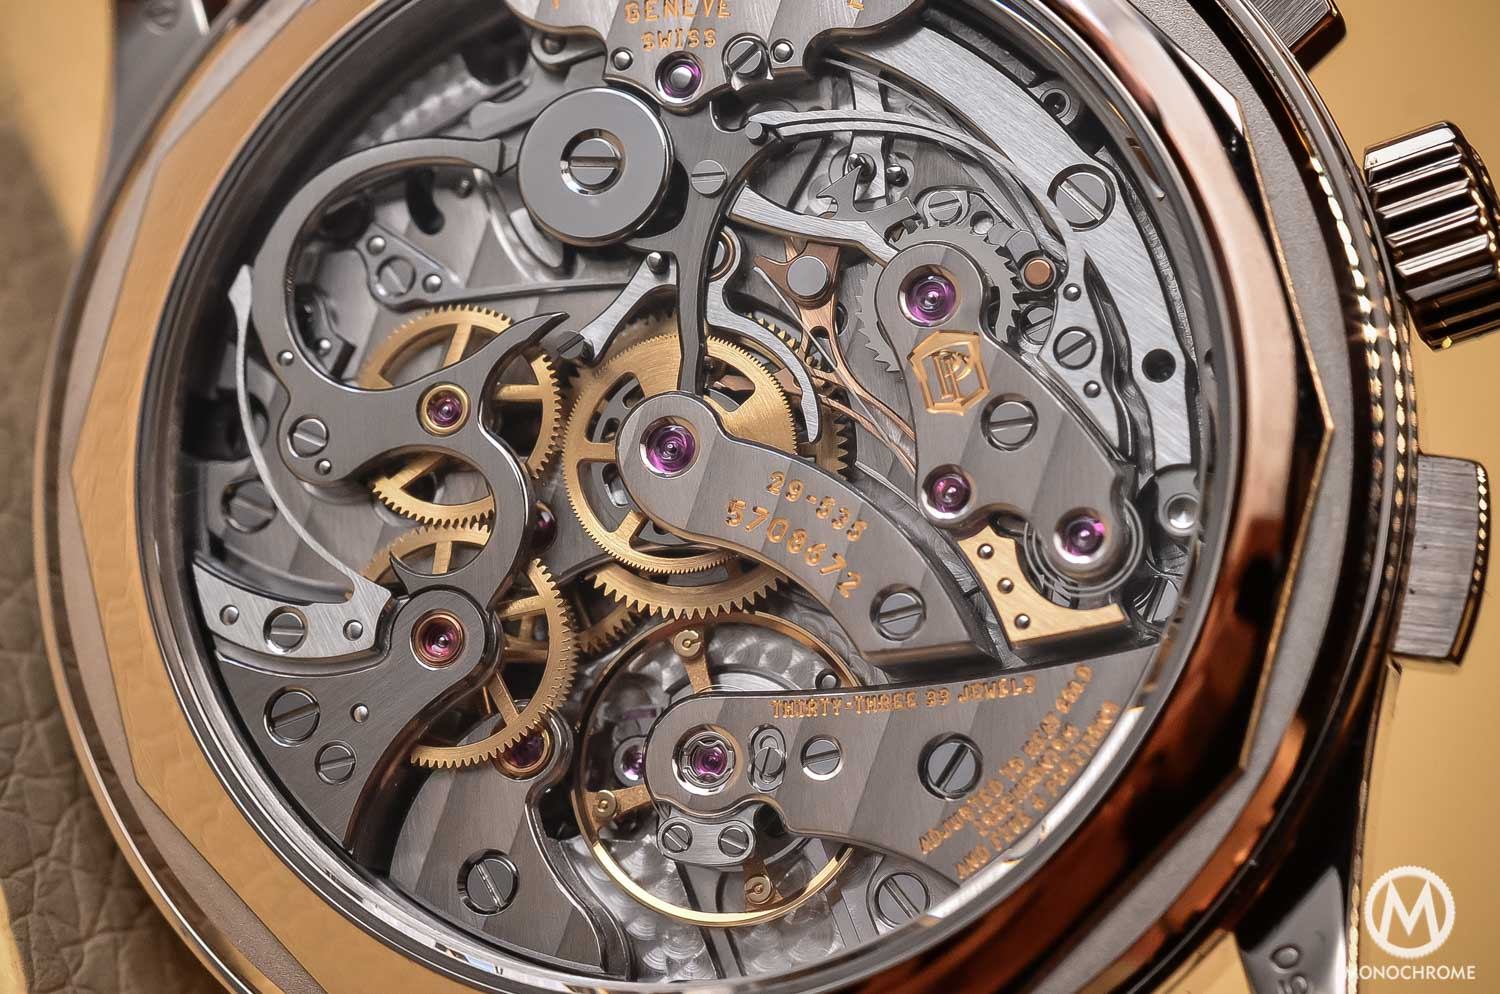 Patek Philippe 5170g-010 Chronograph - review - movement